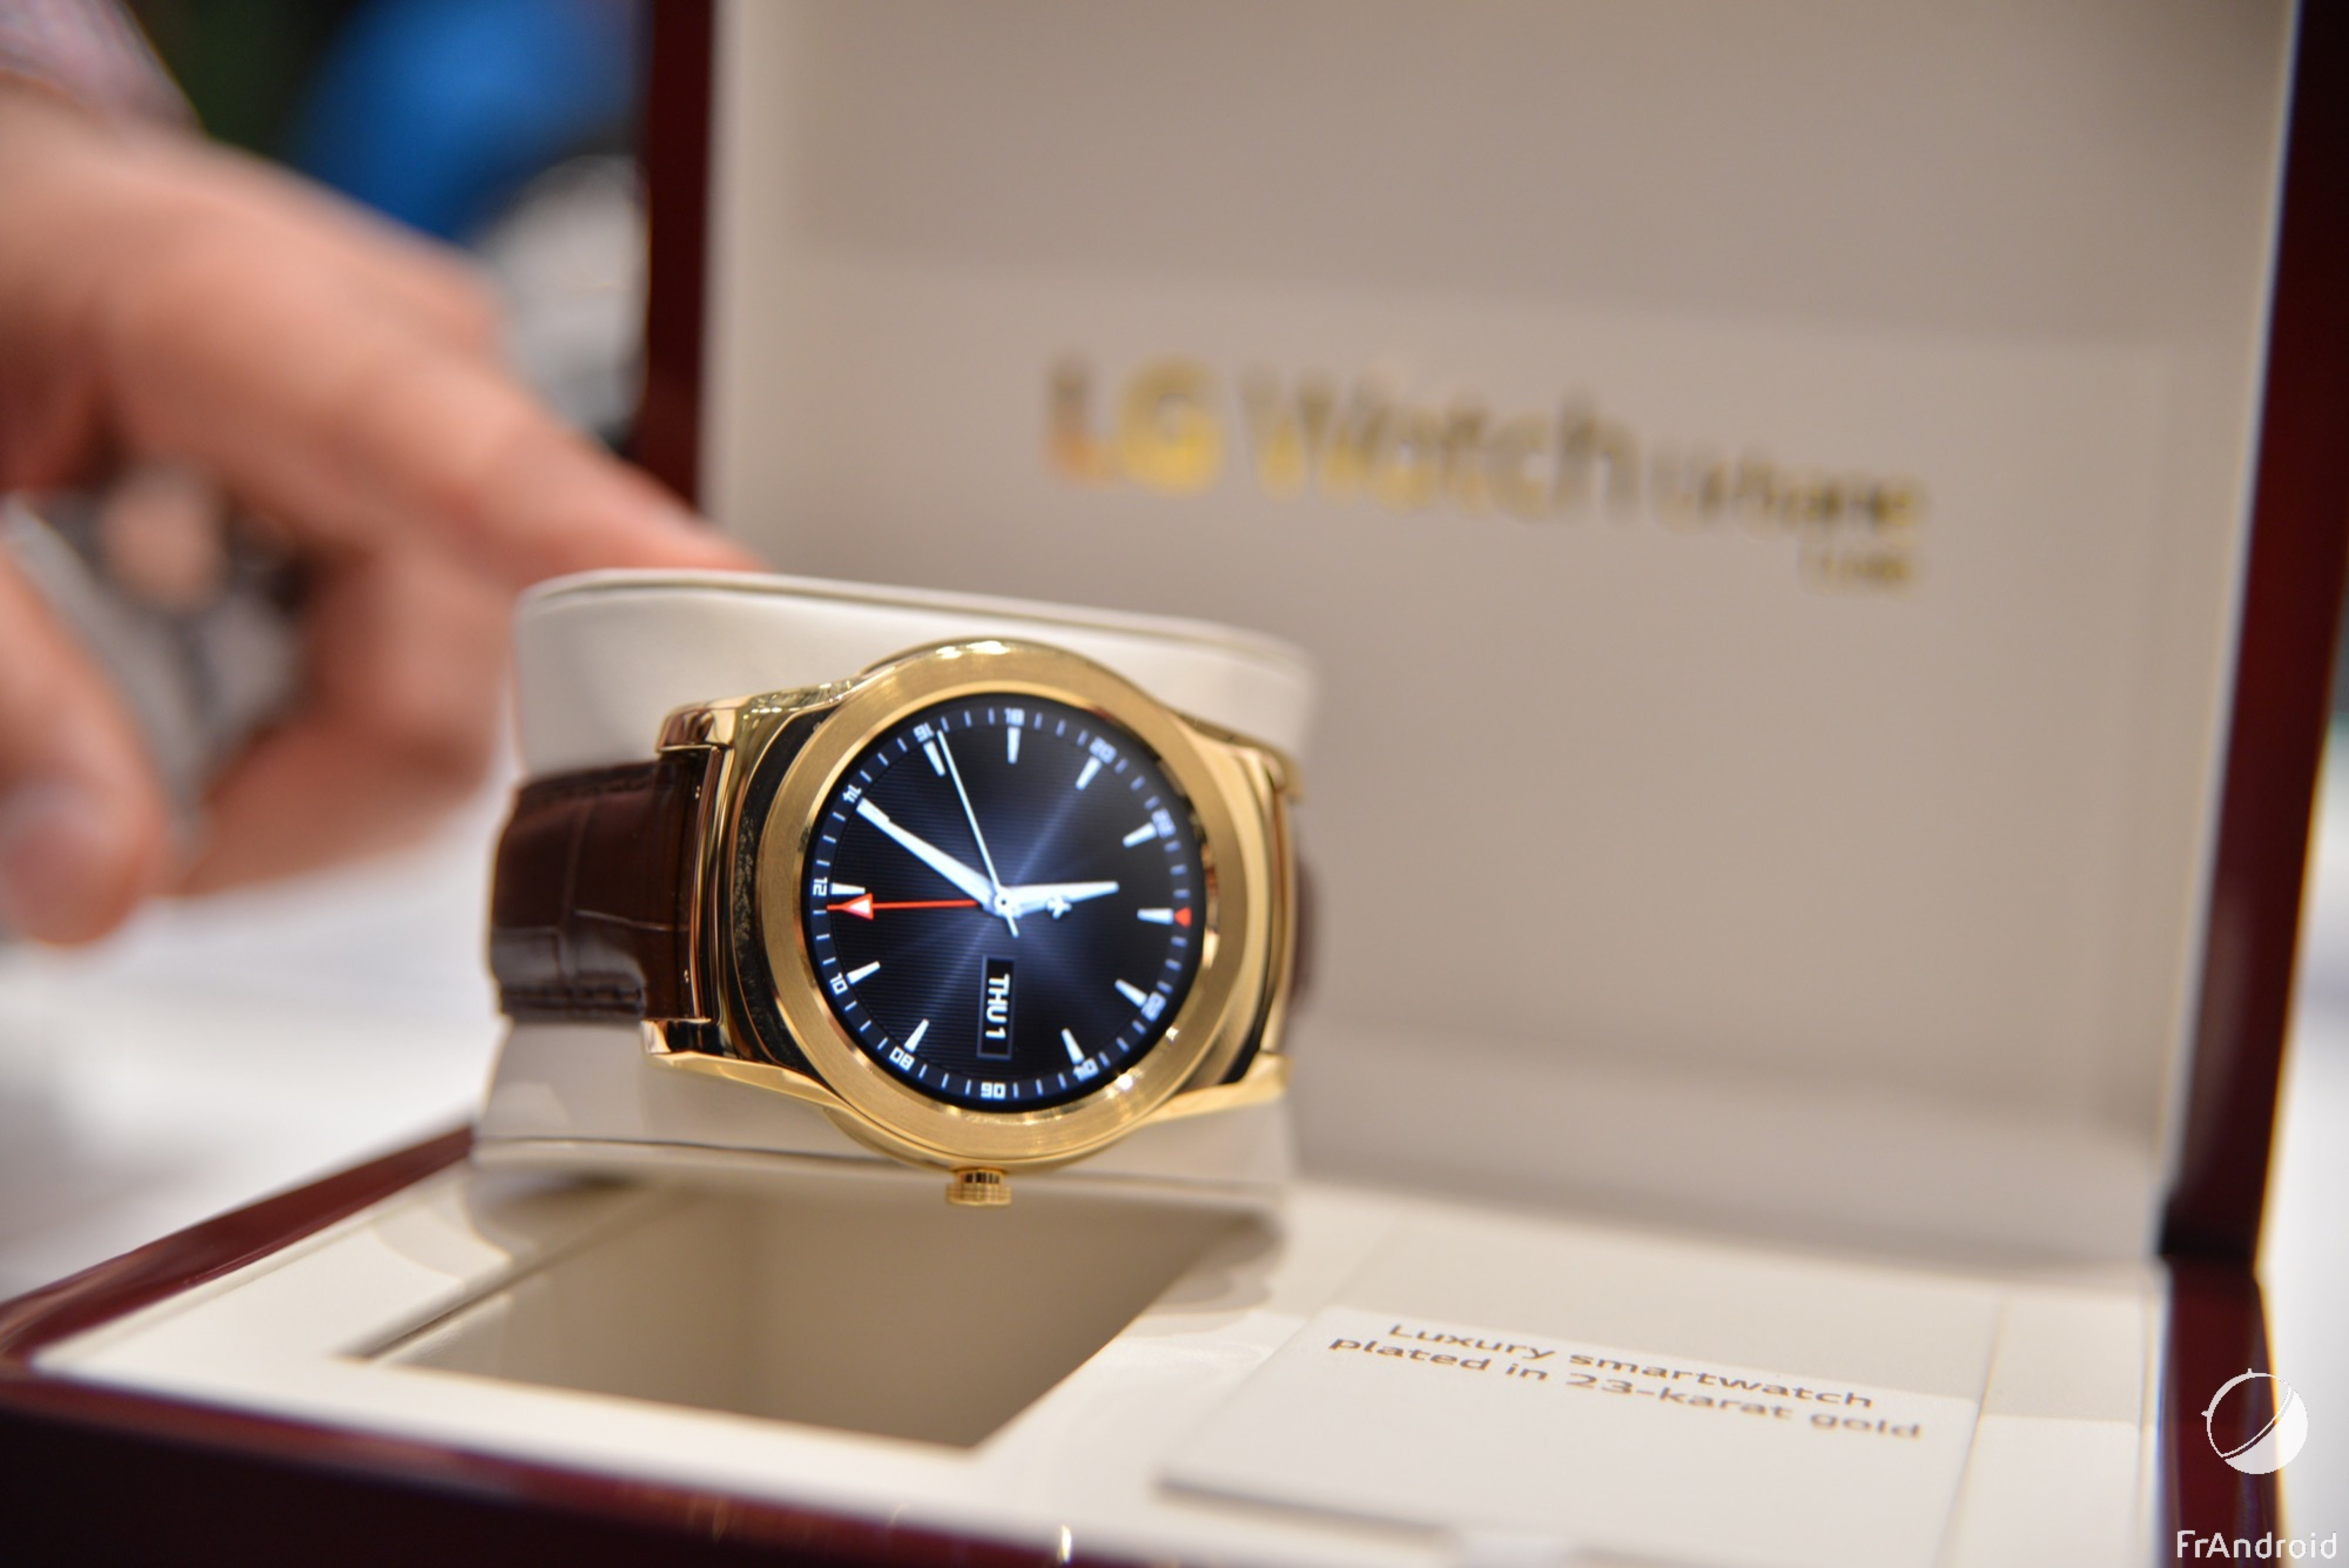 LG Watch Urbane Luxe, nous l'avons vue